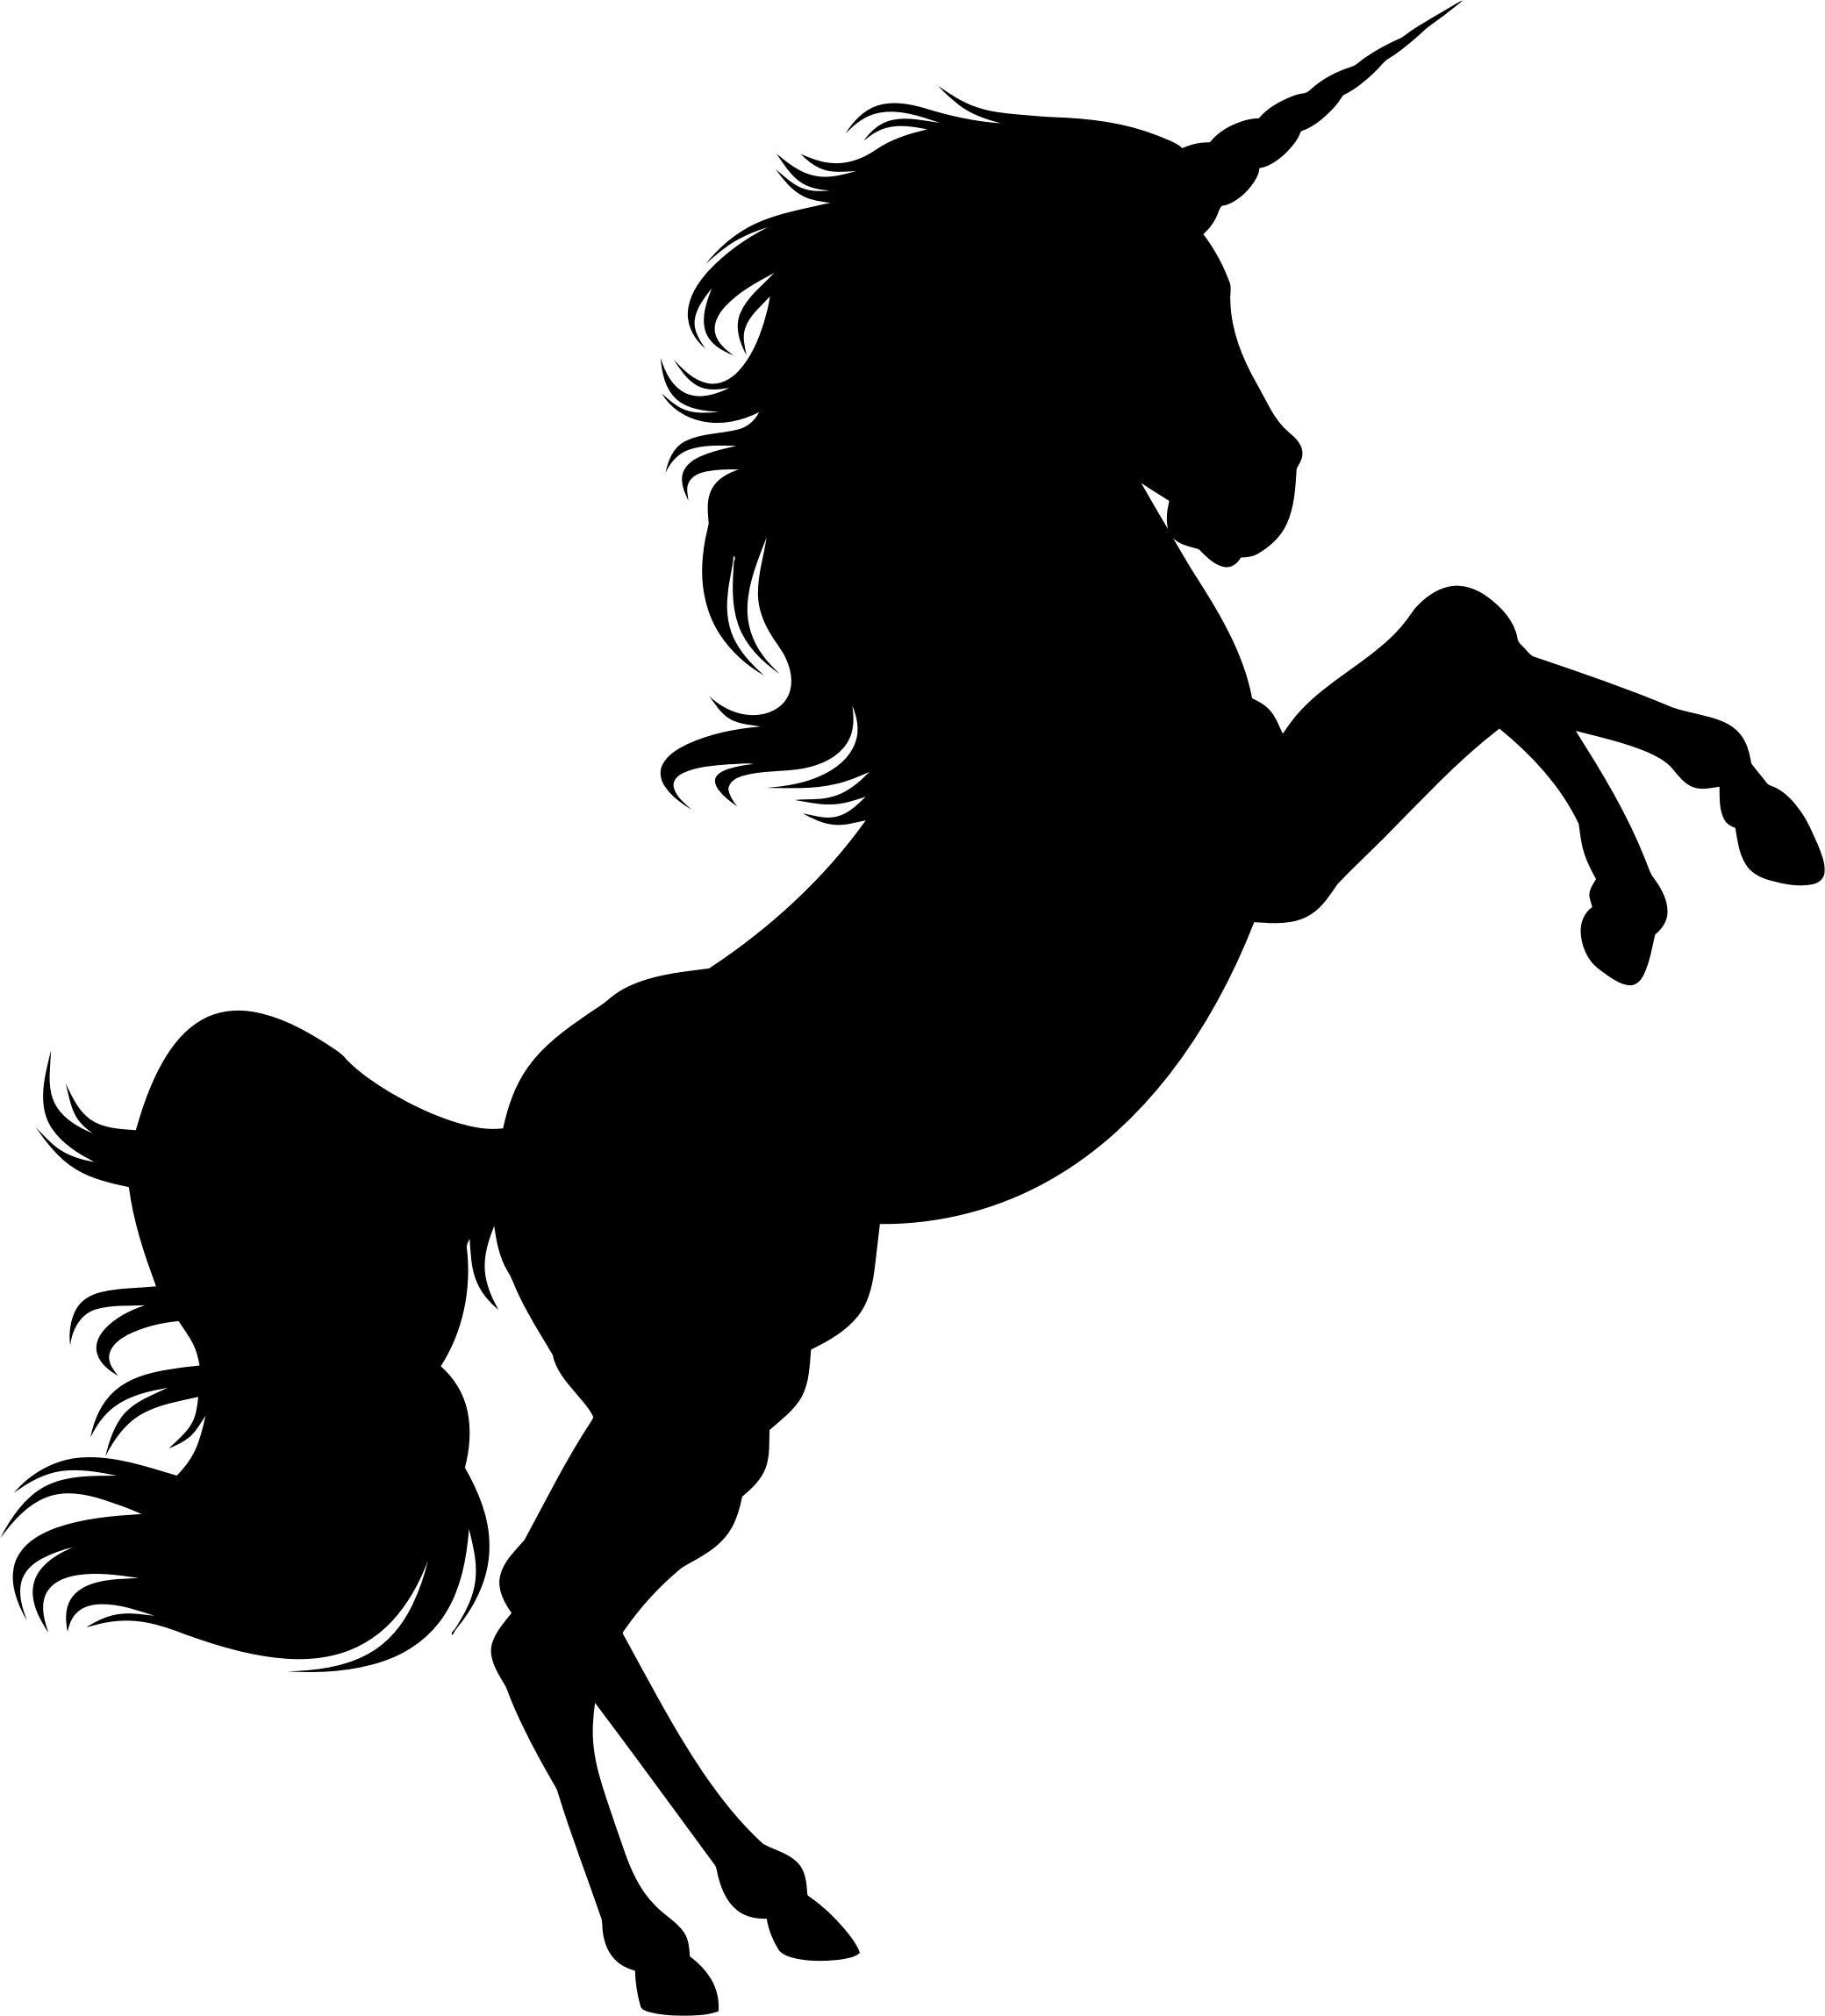 Unicorn Silhouette 2 Icons PNG